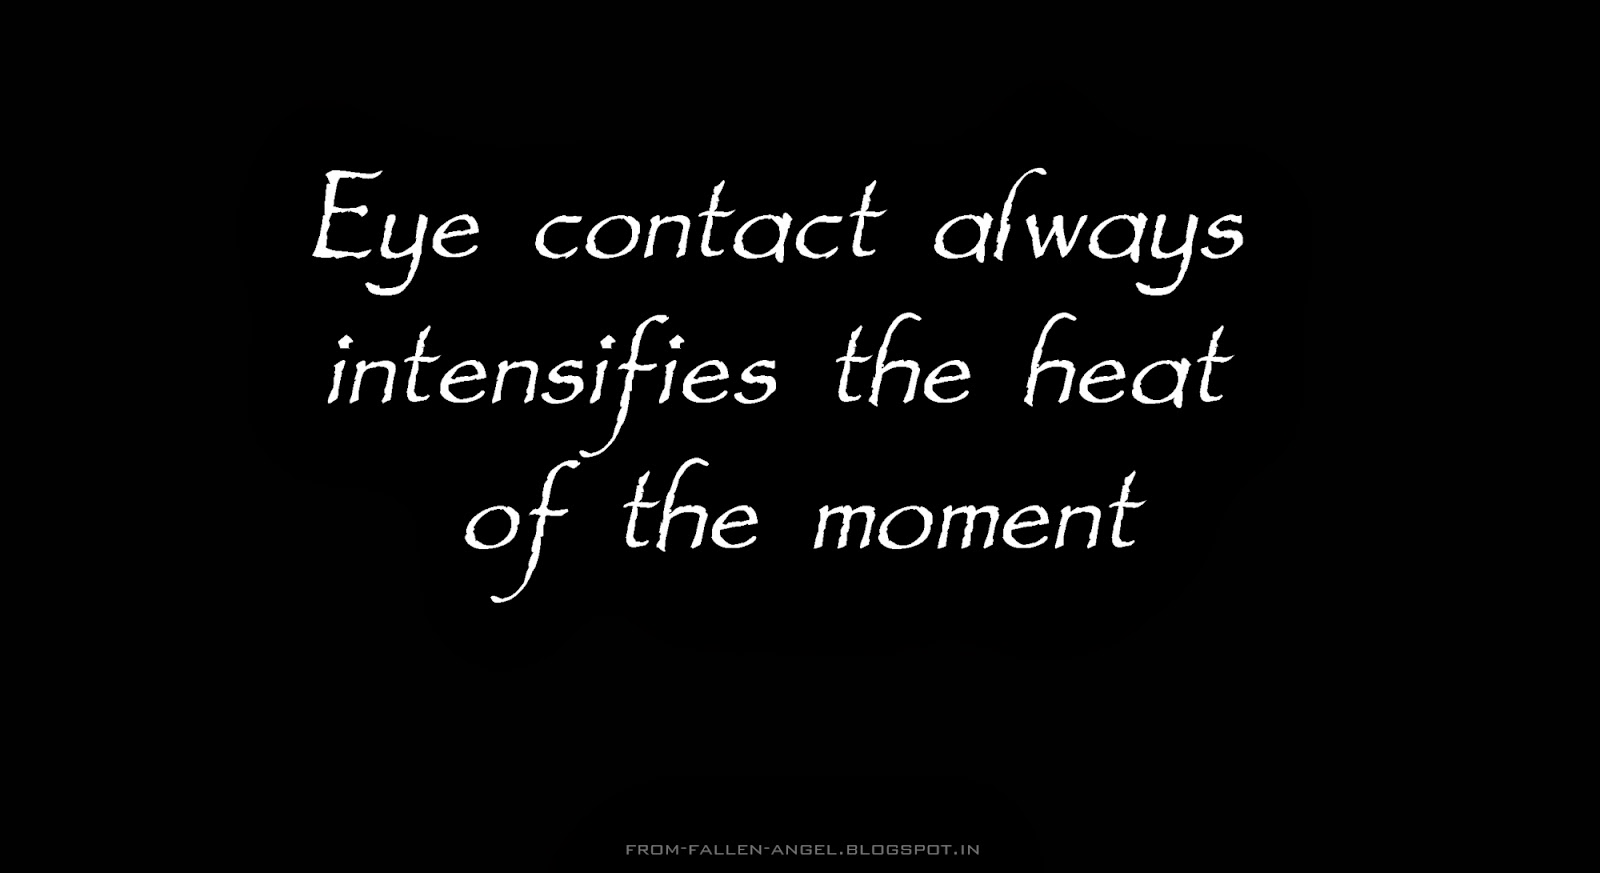 Eye contact always intensifies the heat of the moment.